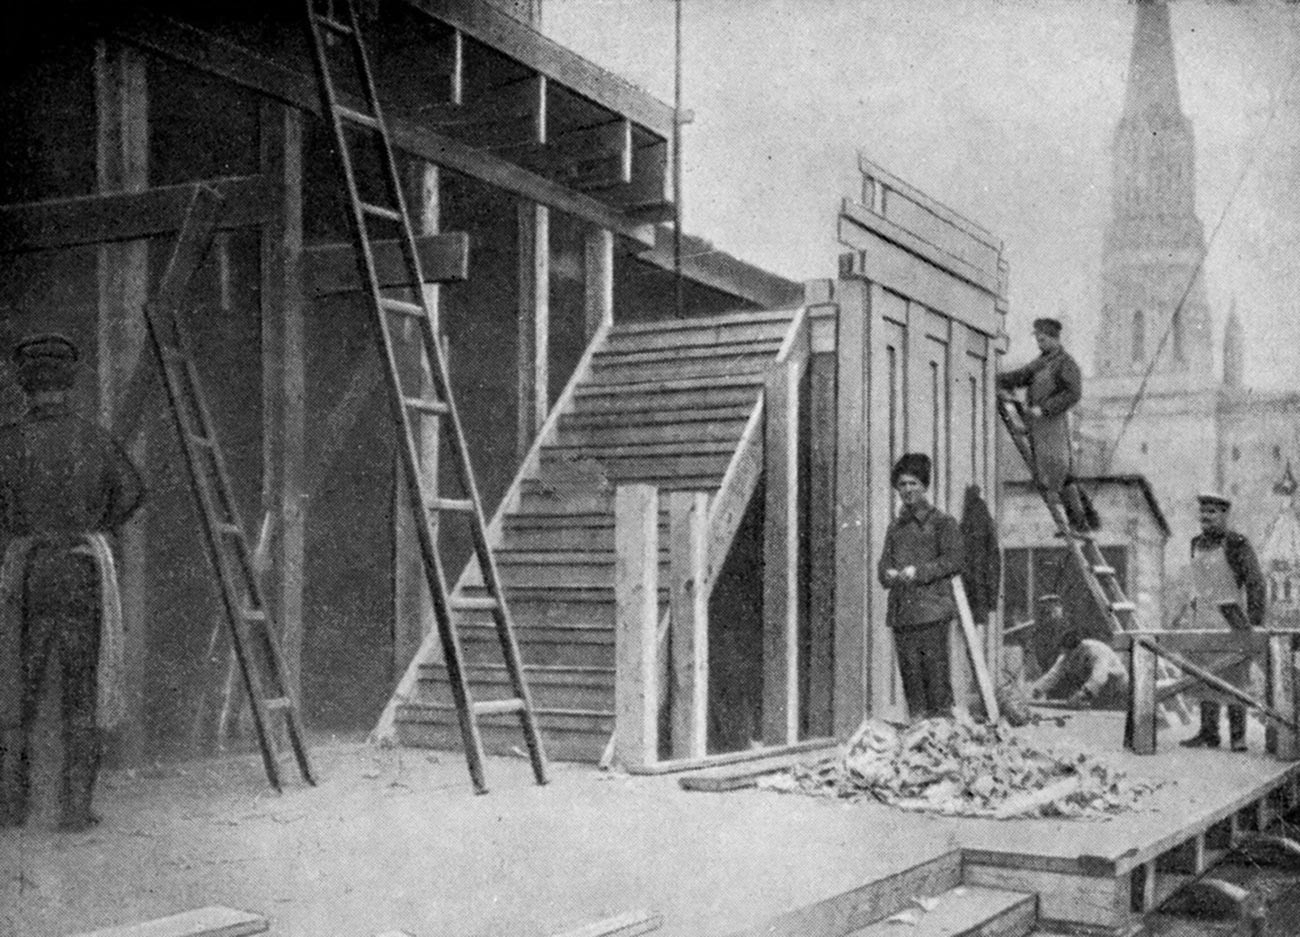 The mausoleum under construction